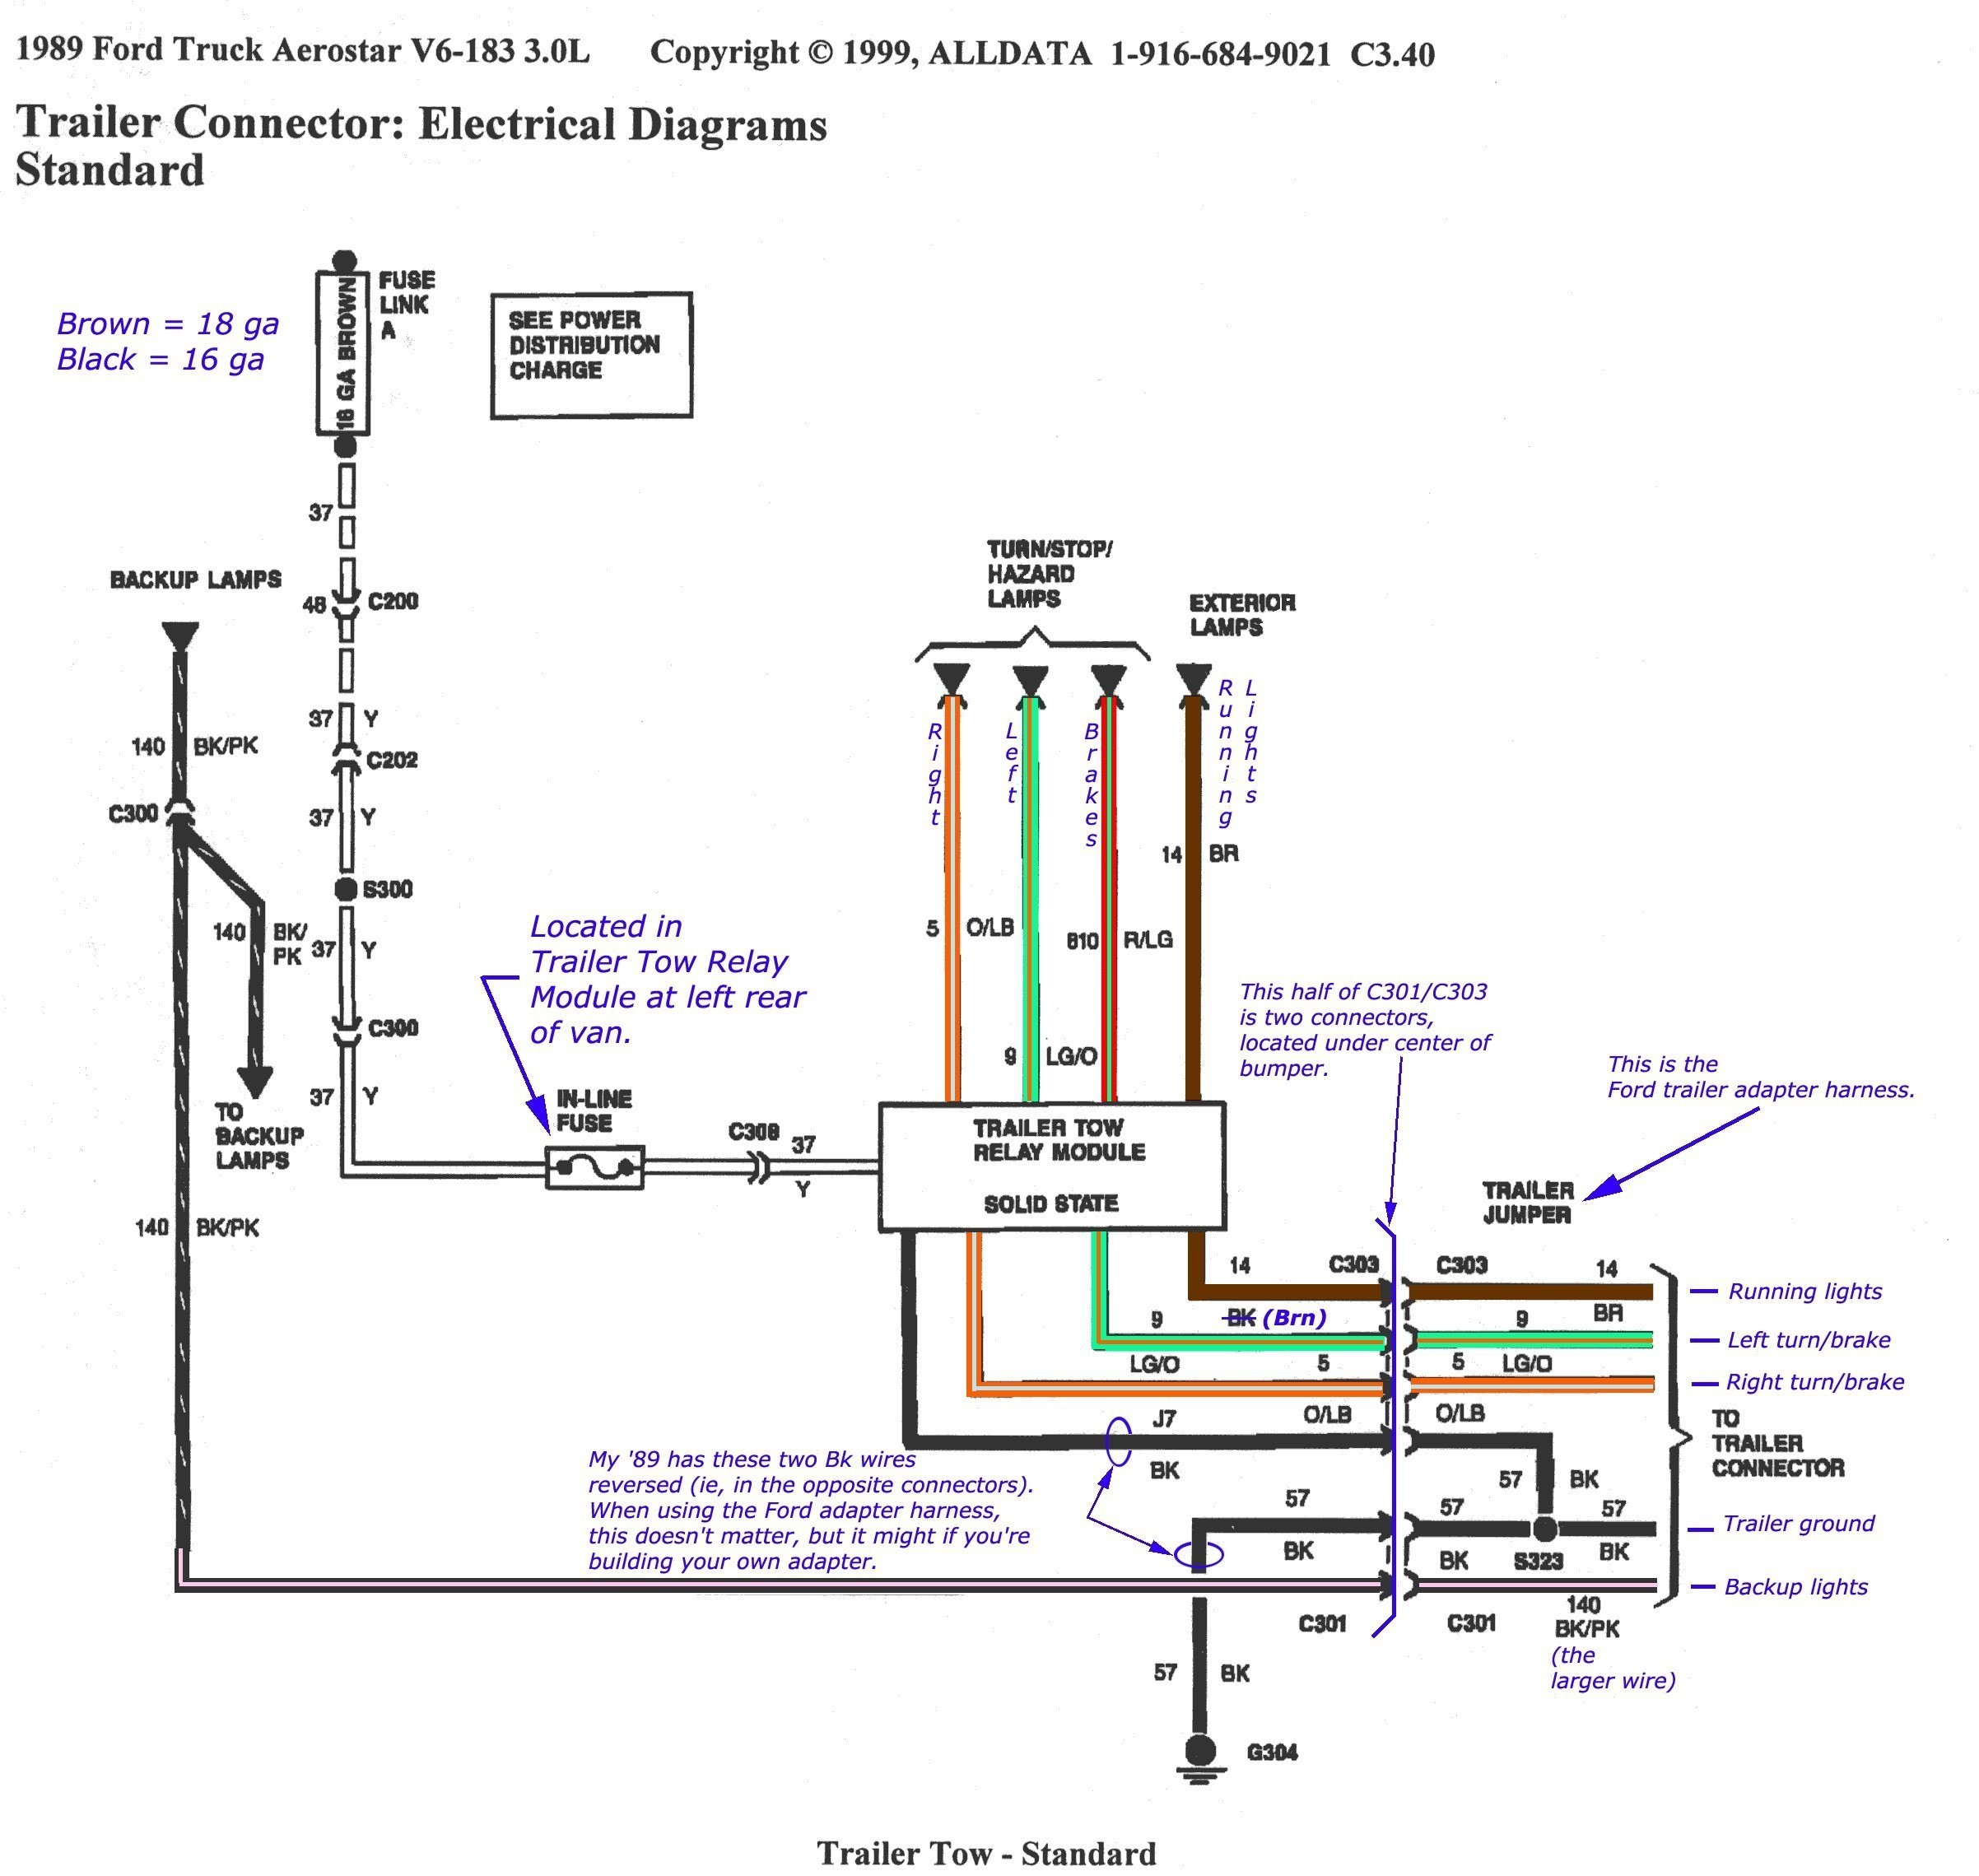 Diagram Wiring Diagram For Utility Trailer With Electric Brakes Wiring Diagram Full Version Hd Quality Wiring Diagram Diagramcocksc Banficesare It